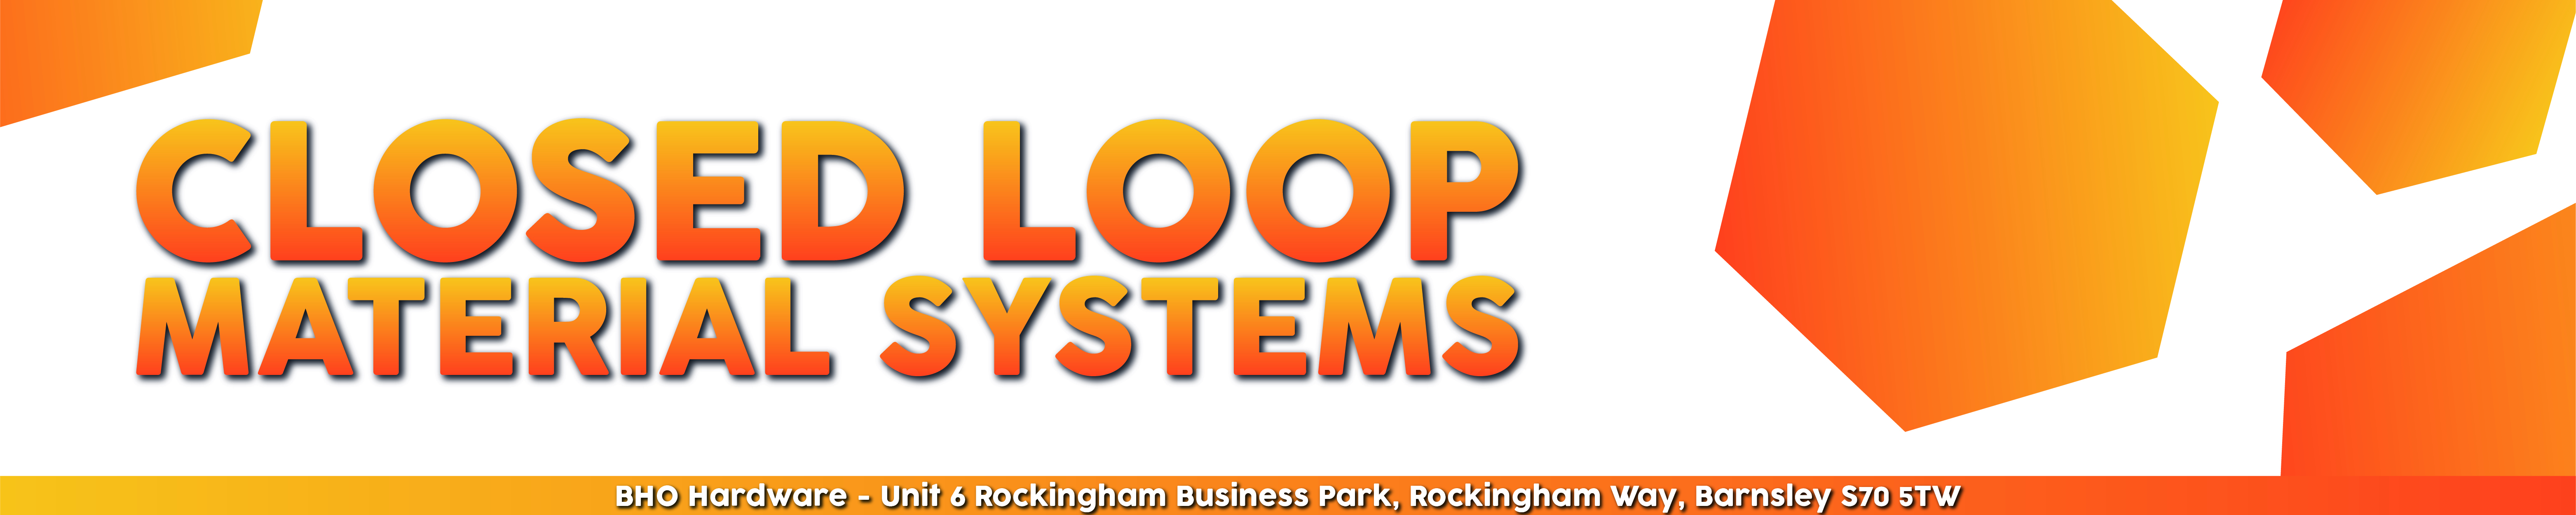 Closed Loop Material Systems